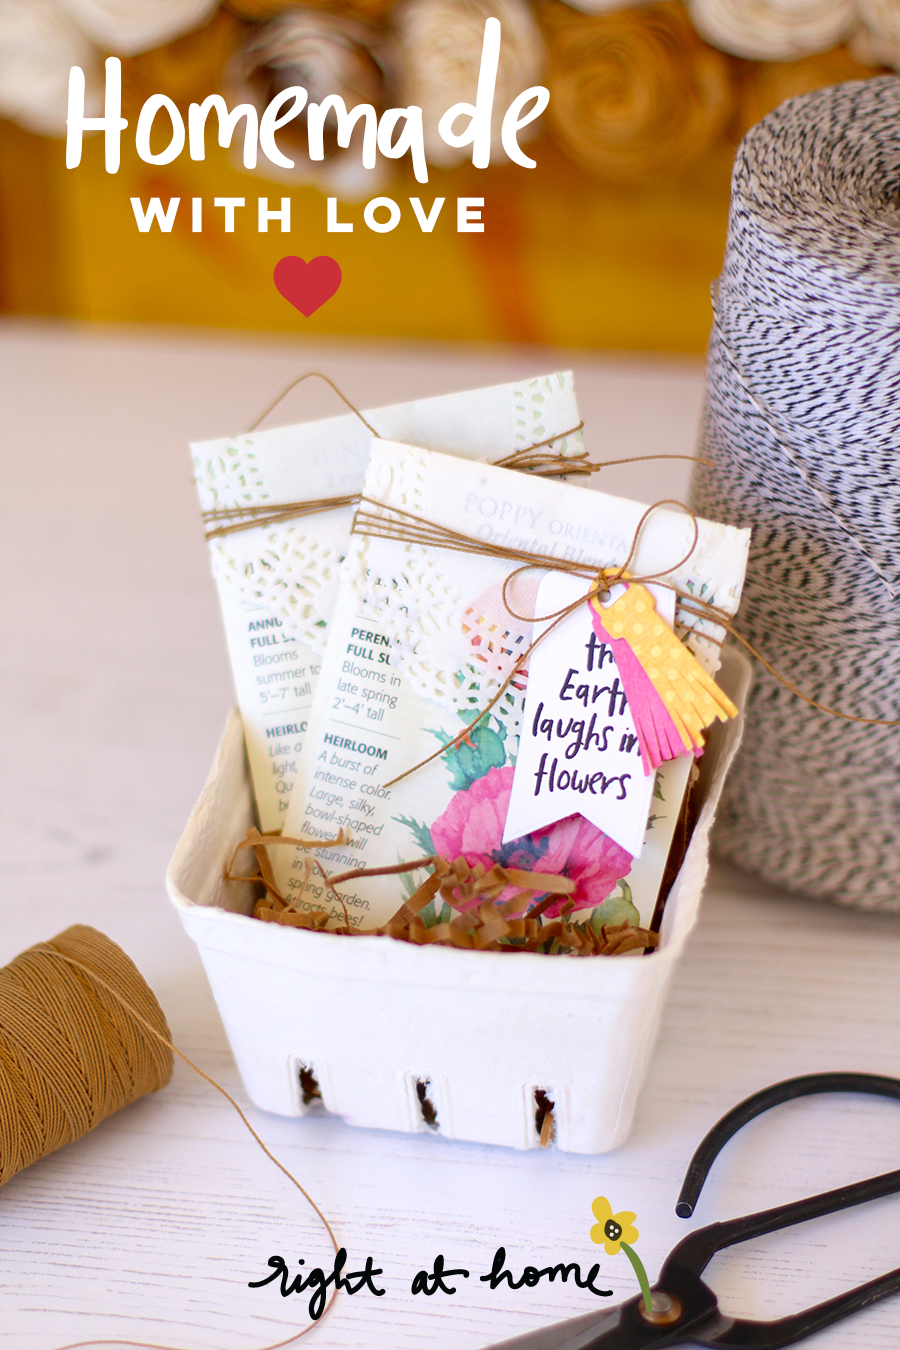 DIY Seed Packet Favors by Nicole // Homemade with Love Day #1 - rightathomeshop.com/blog